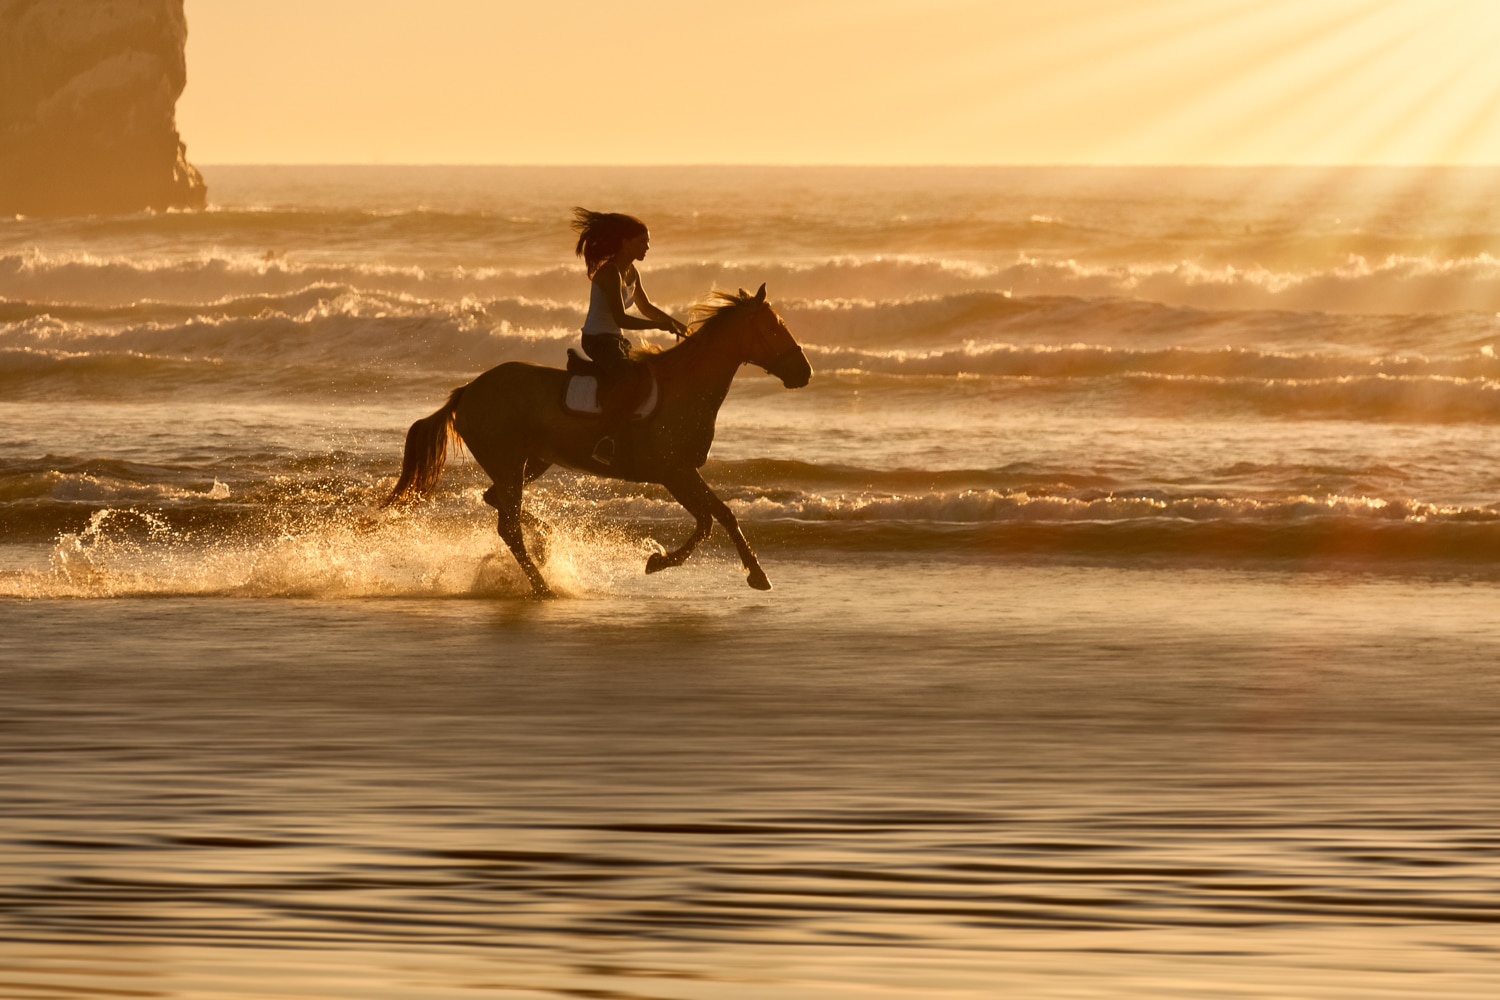 Girl Horsebackriding on the Beach at Sunset | Morro Strand State Beach | Morro Bay | California